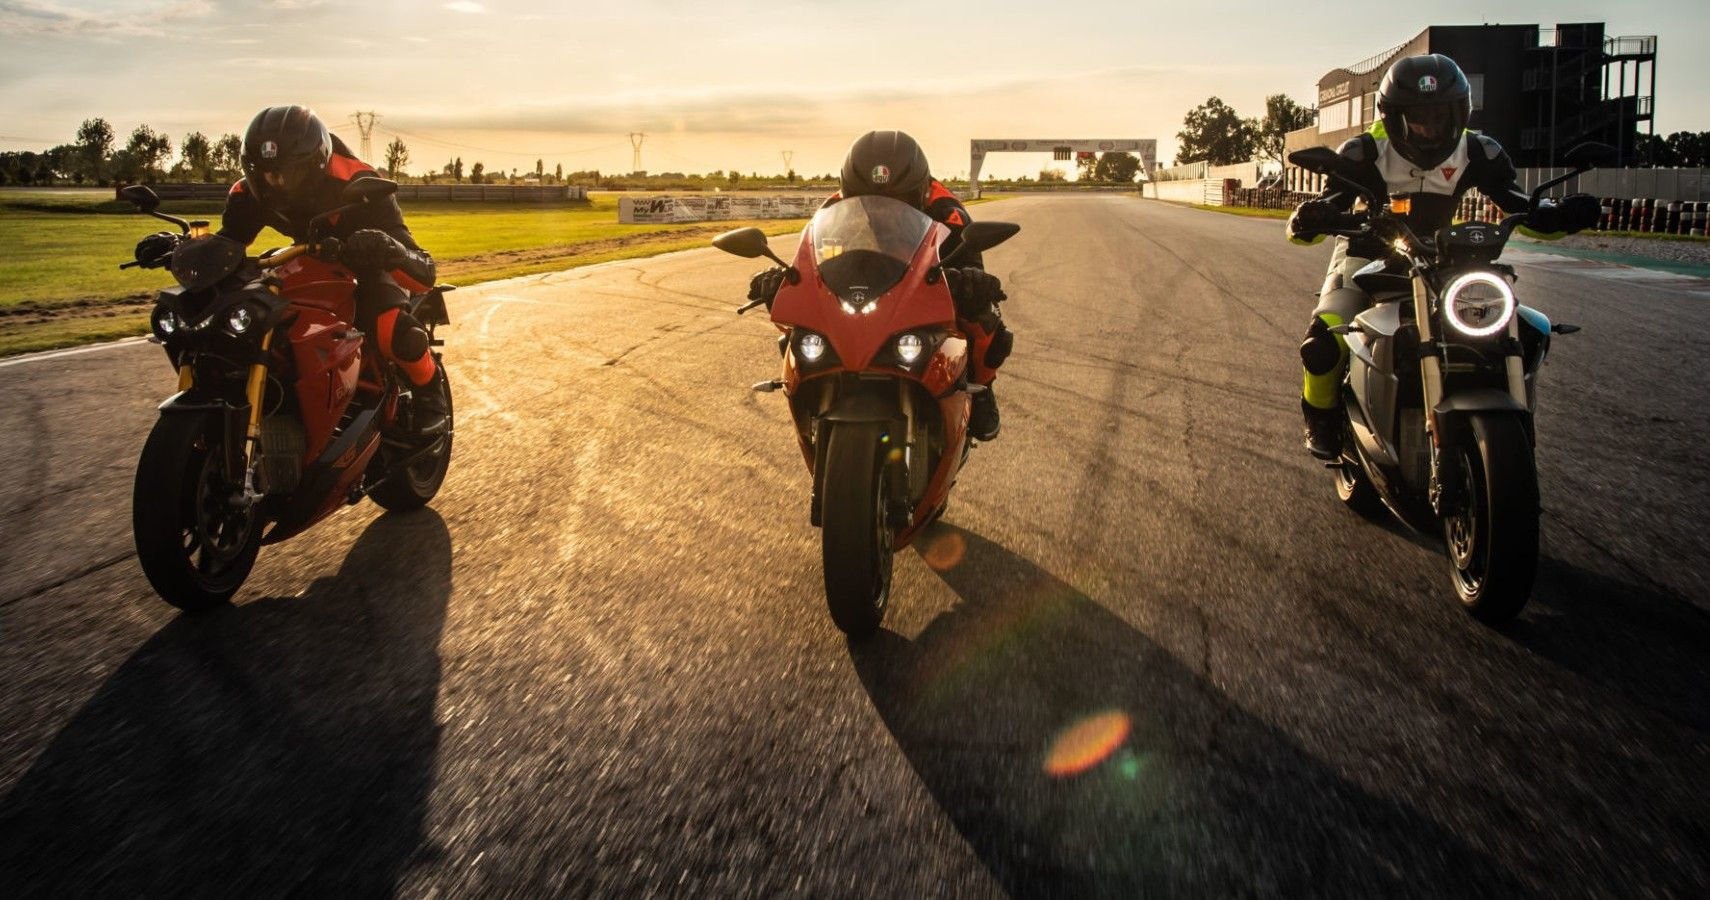 Here's Everything We Know About Energica's Range Of Electric Motorcycles